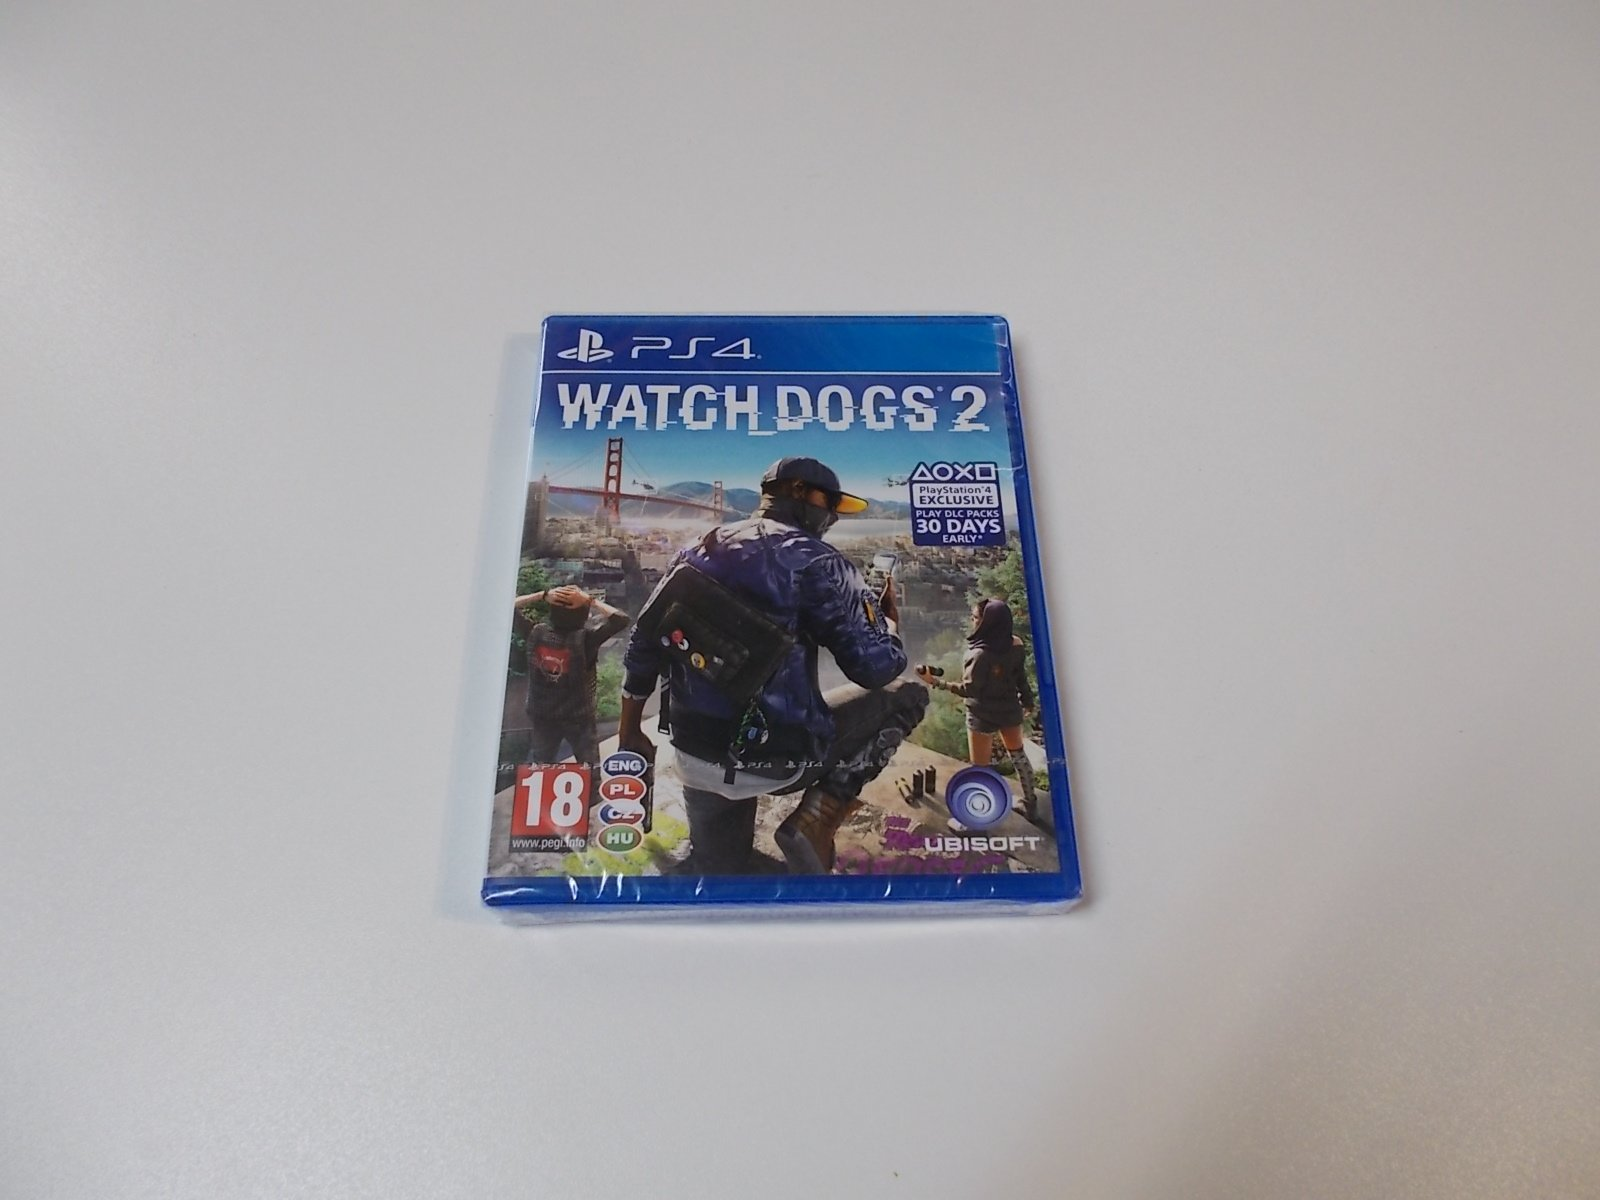 Watch Dogs 2 - GRA Ps4 - Opole 0494